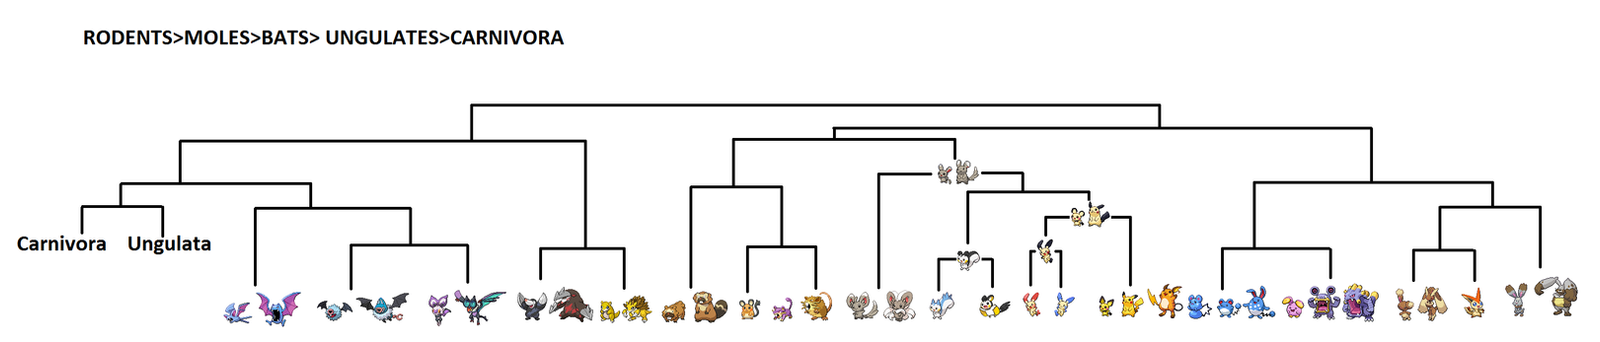 RODENTIA TREE+ MOLES+ BATS by Red-Orion85